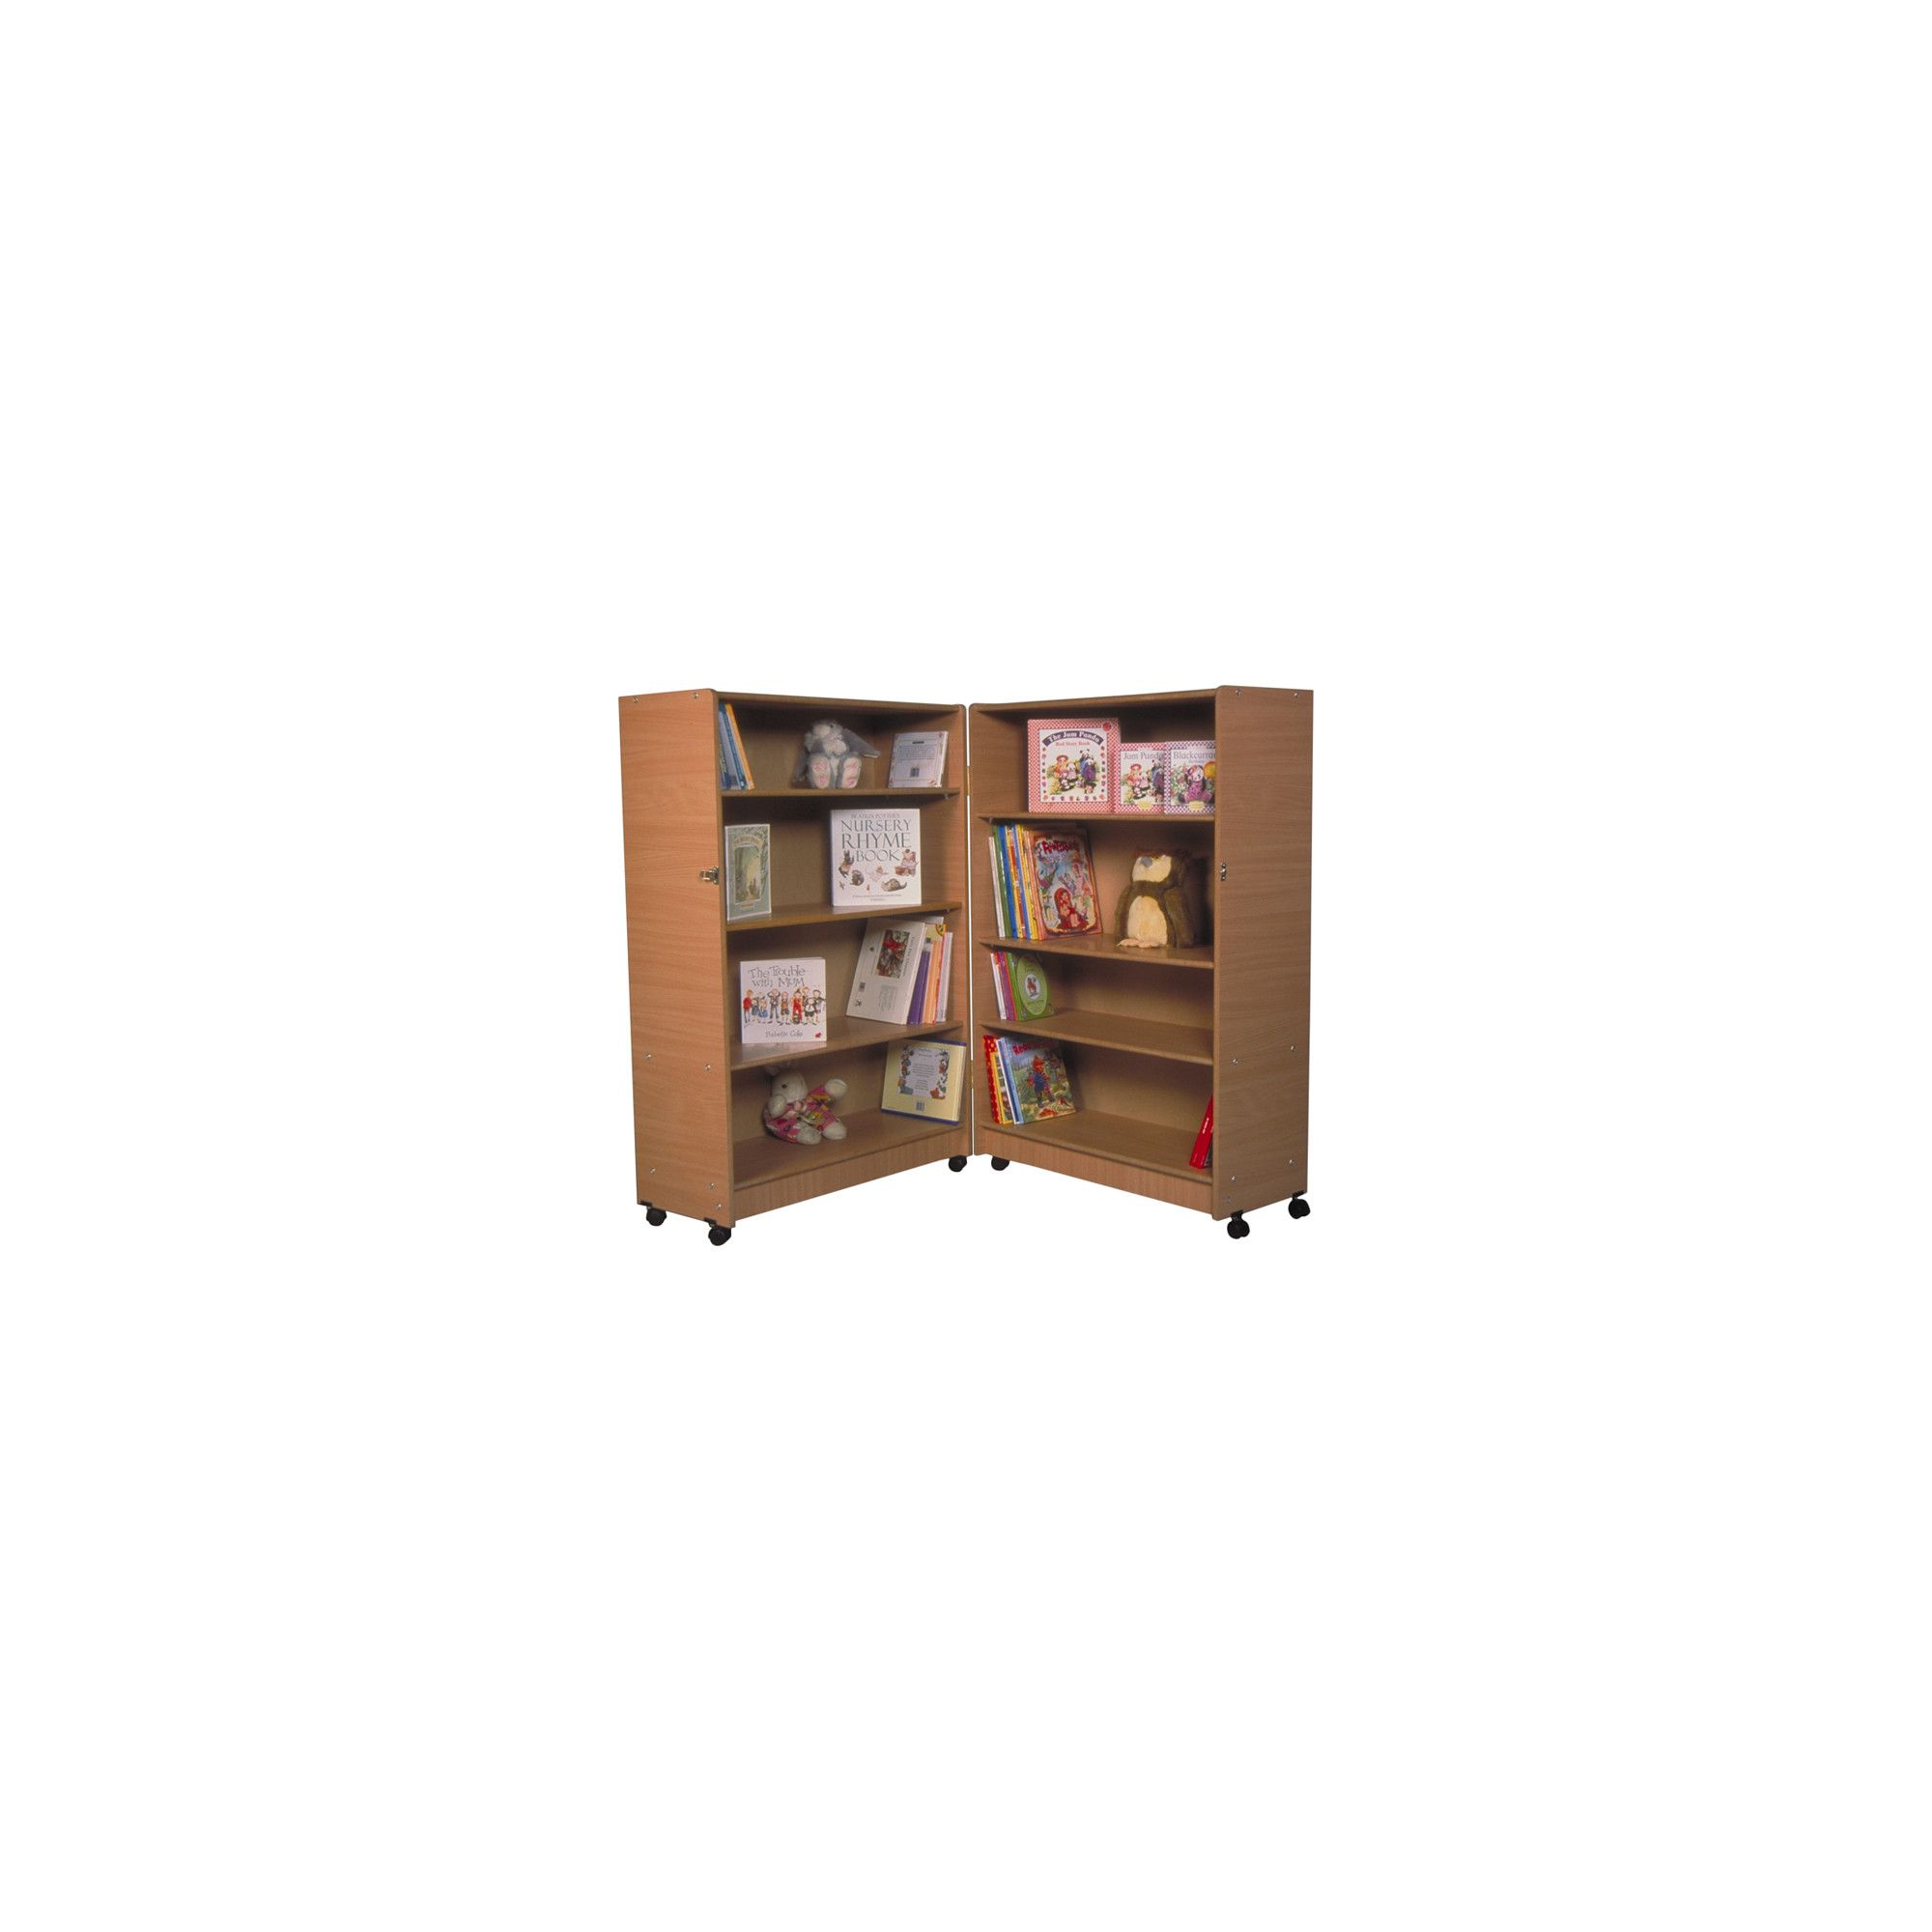 Twoey Toys Hinged Bookcase with Four Shelves - Beech at Tesco Direct